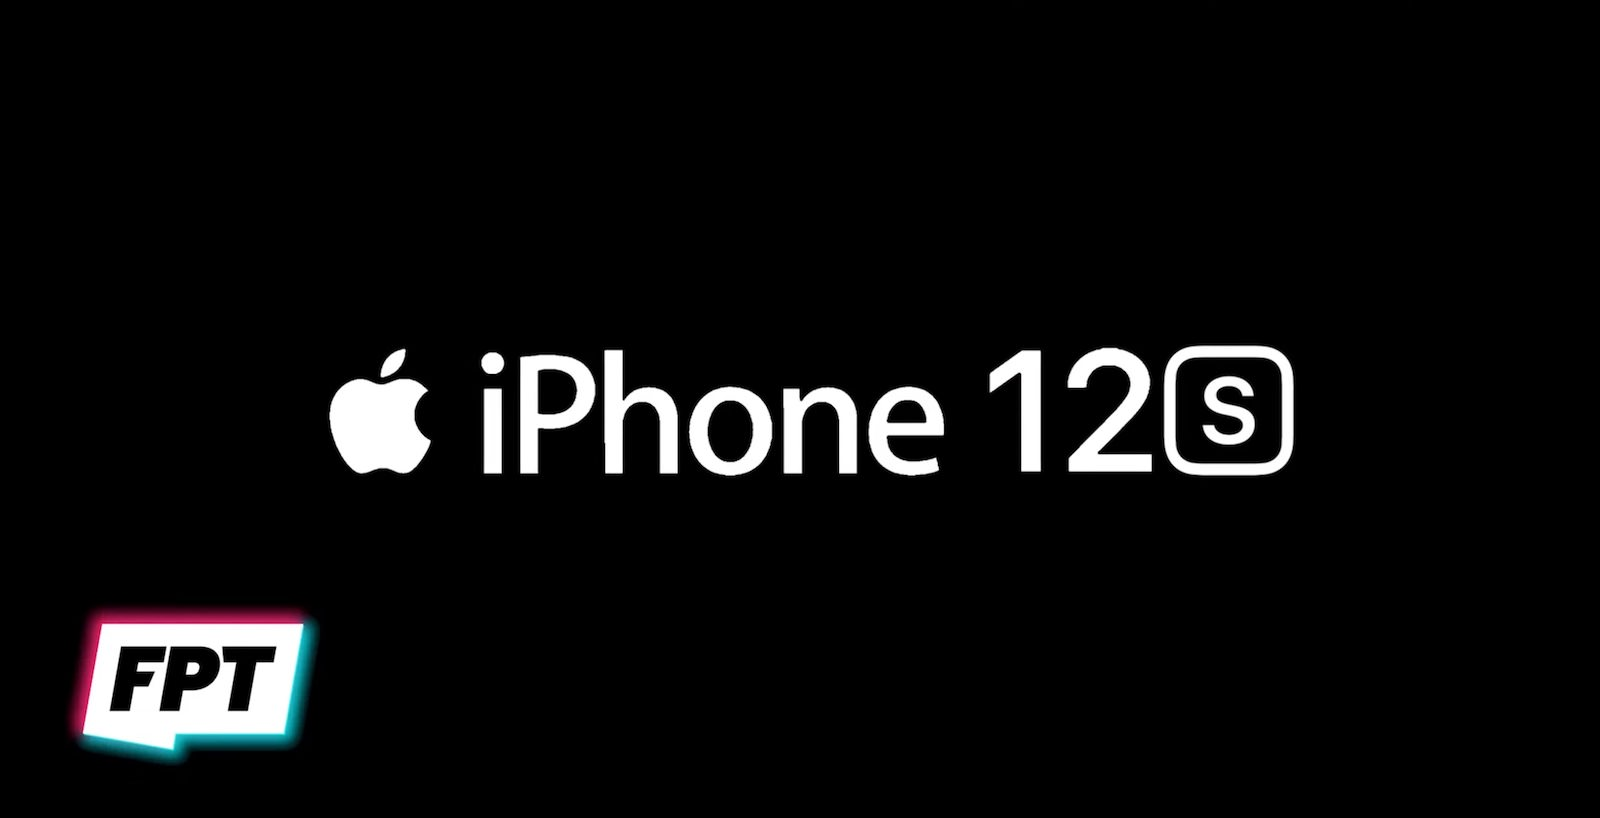 iphone-12s-maybe-the-next-iphones-name.jpg